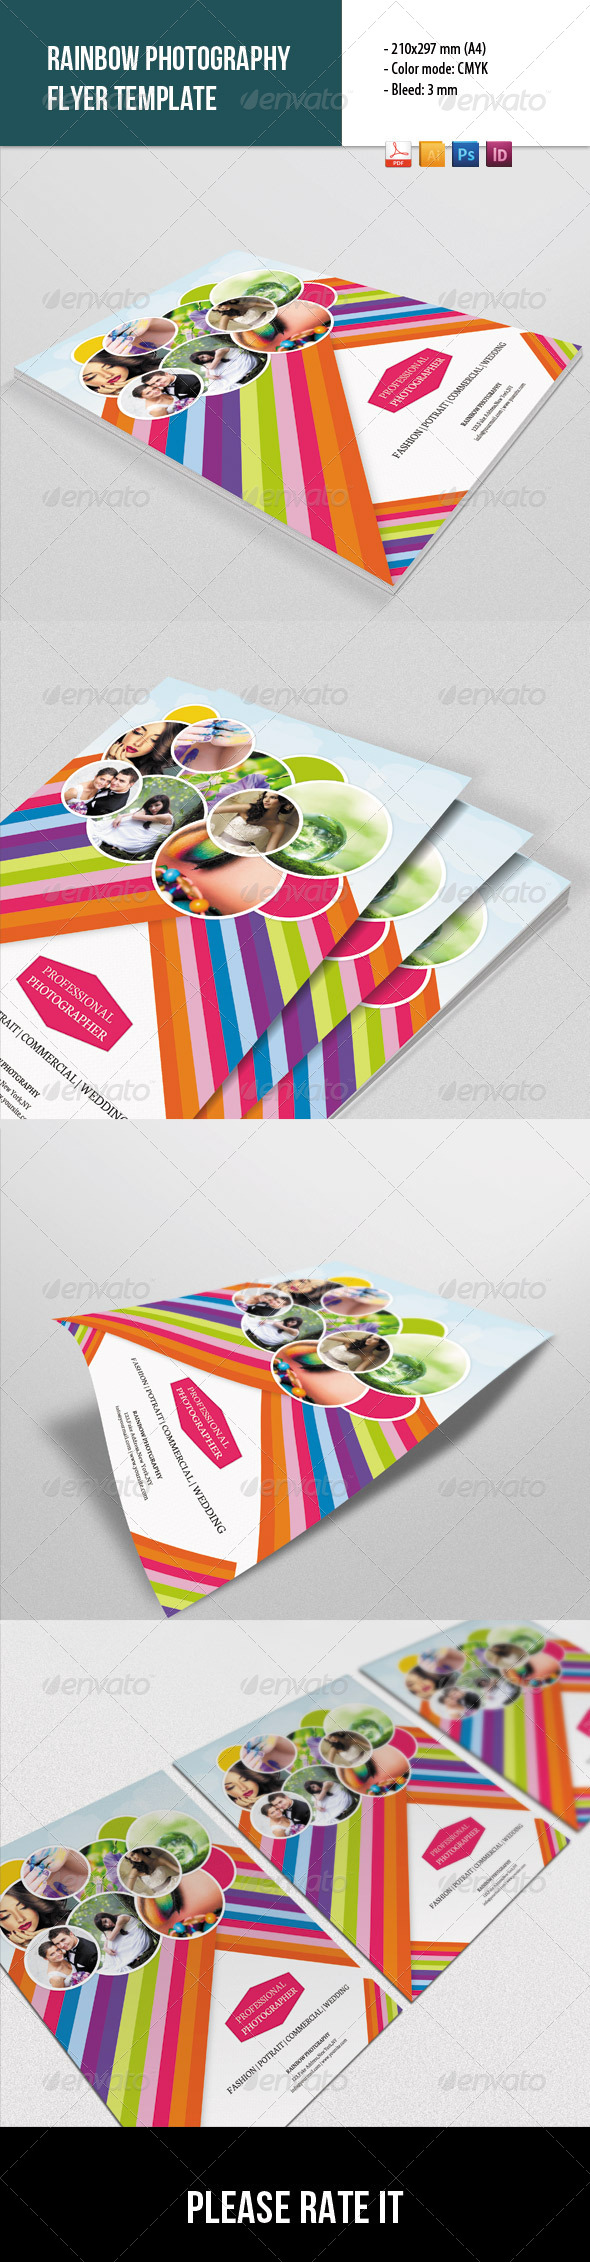 GraphicRiver Rainbow Style Photography Flyer 8761363